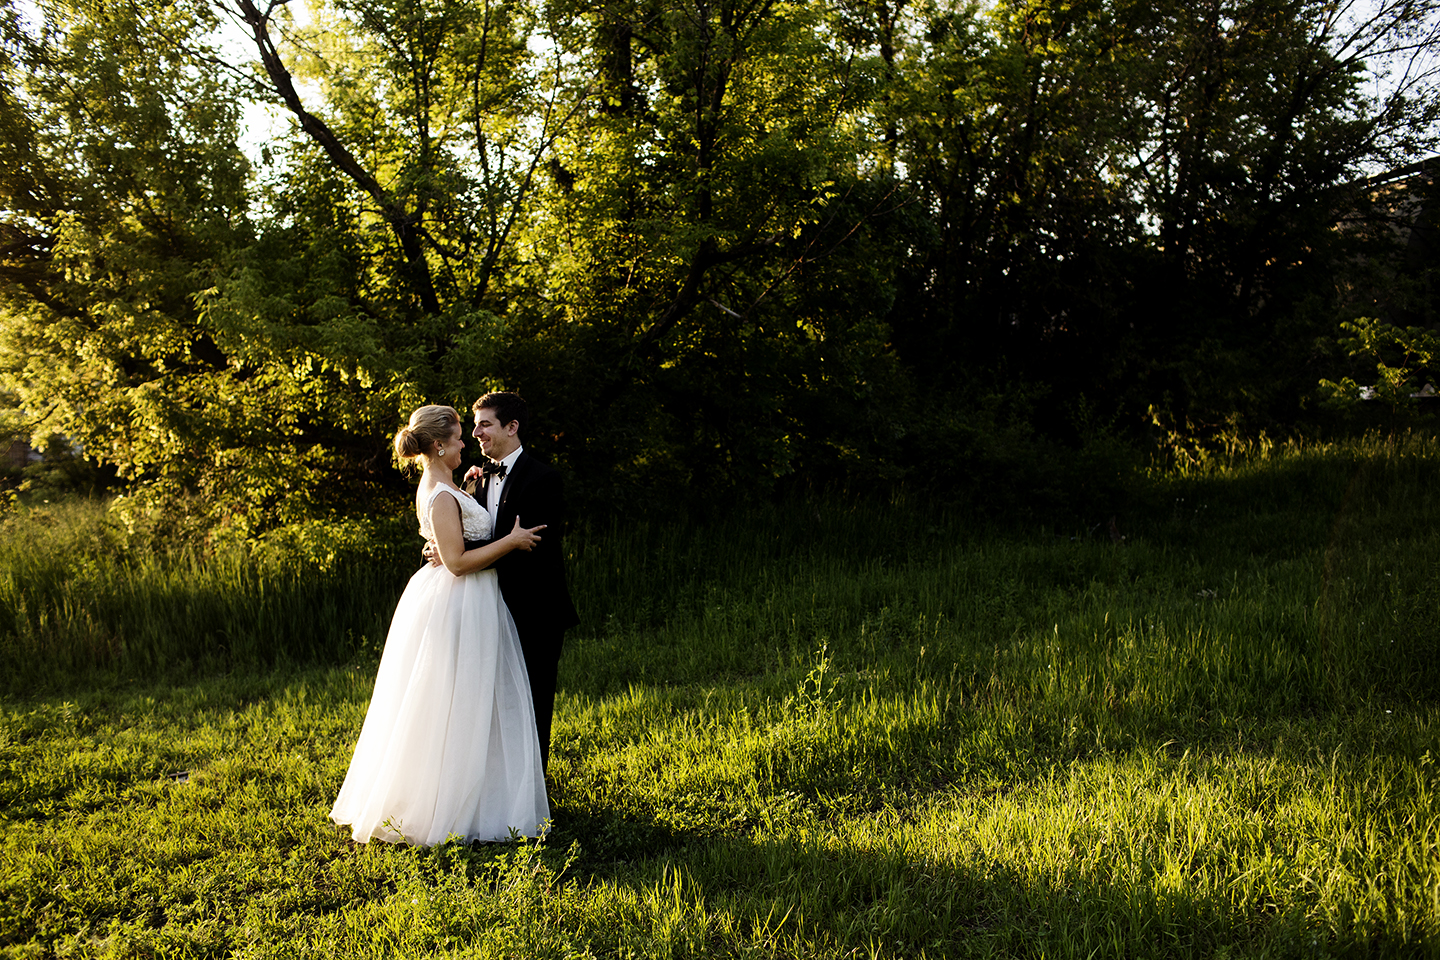 Solar Arts by Chowgirls | MN Wedding Photographer | Photogen Inc. | Eliesa Johnson | Based in Minneapolis